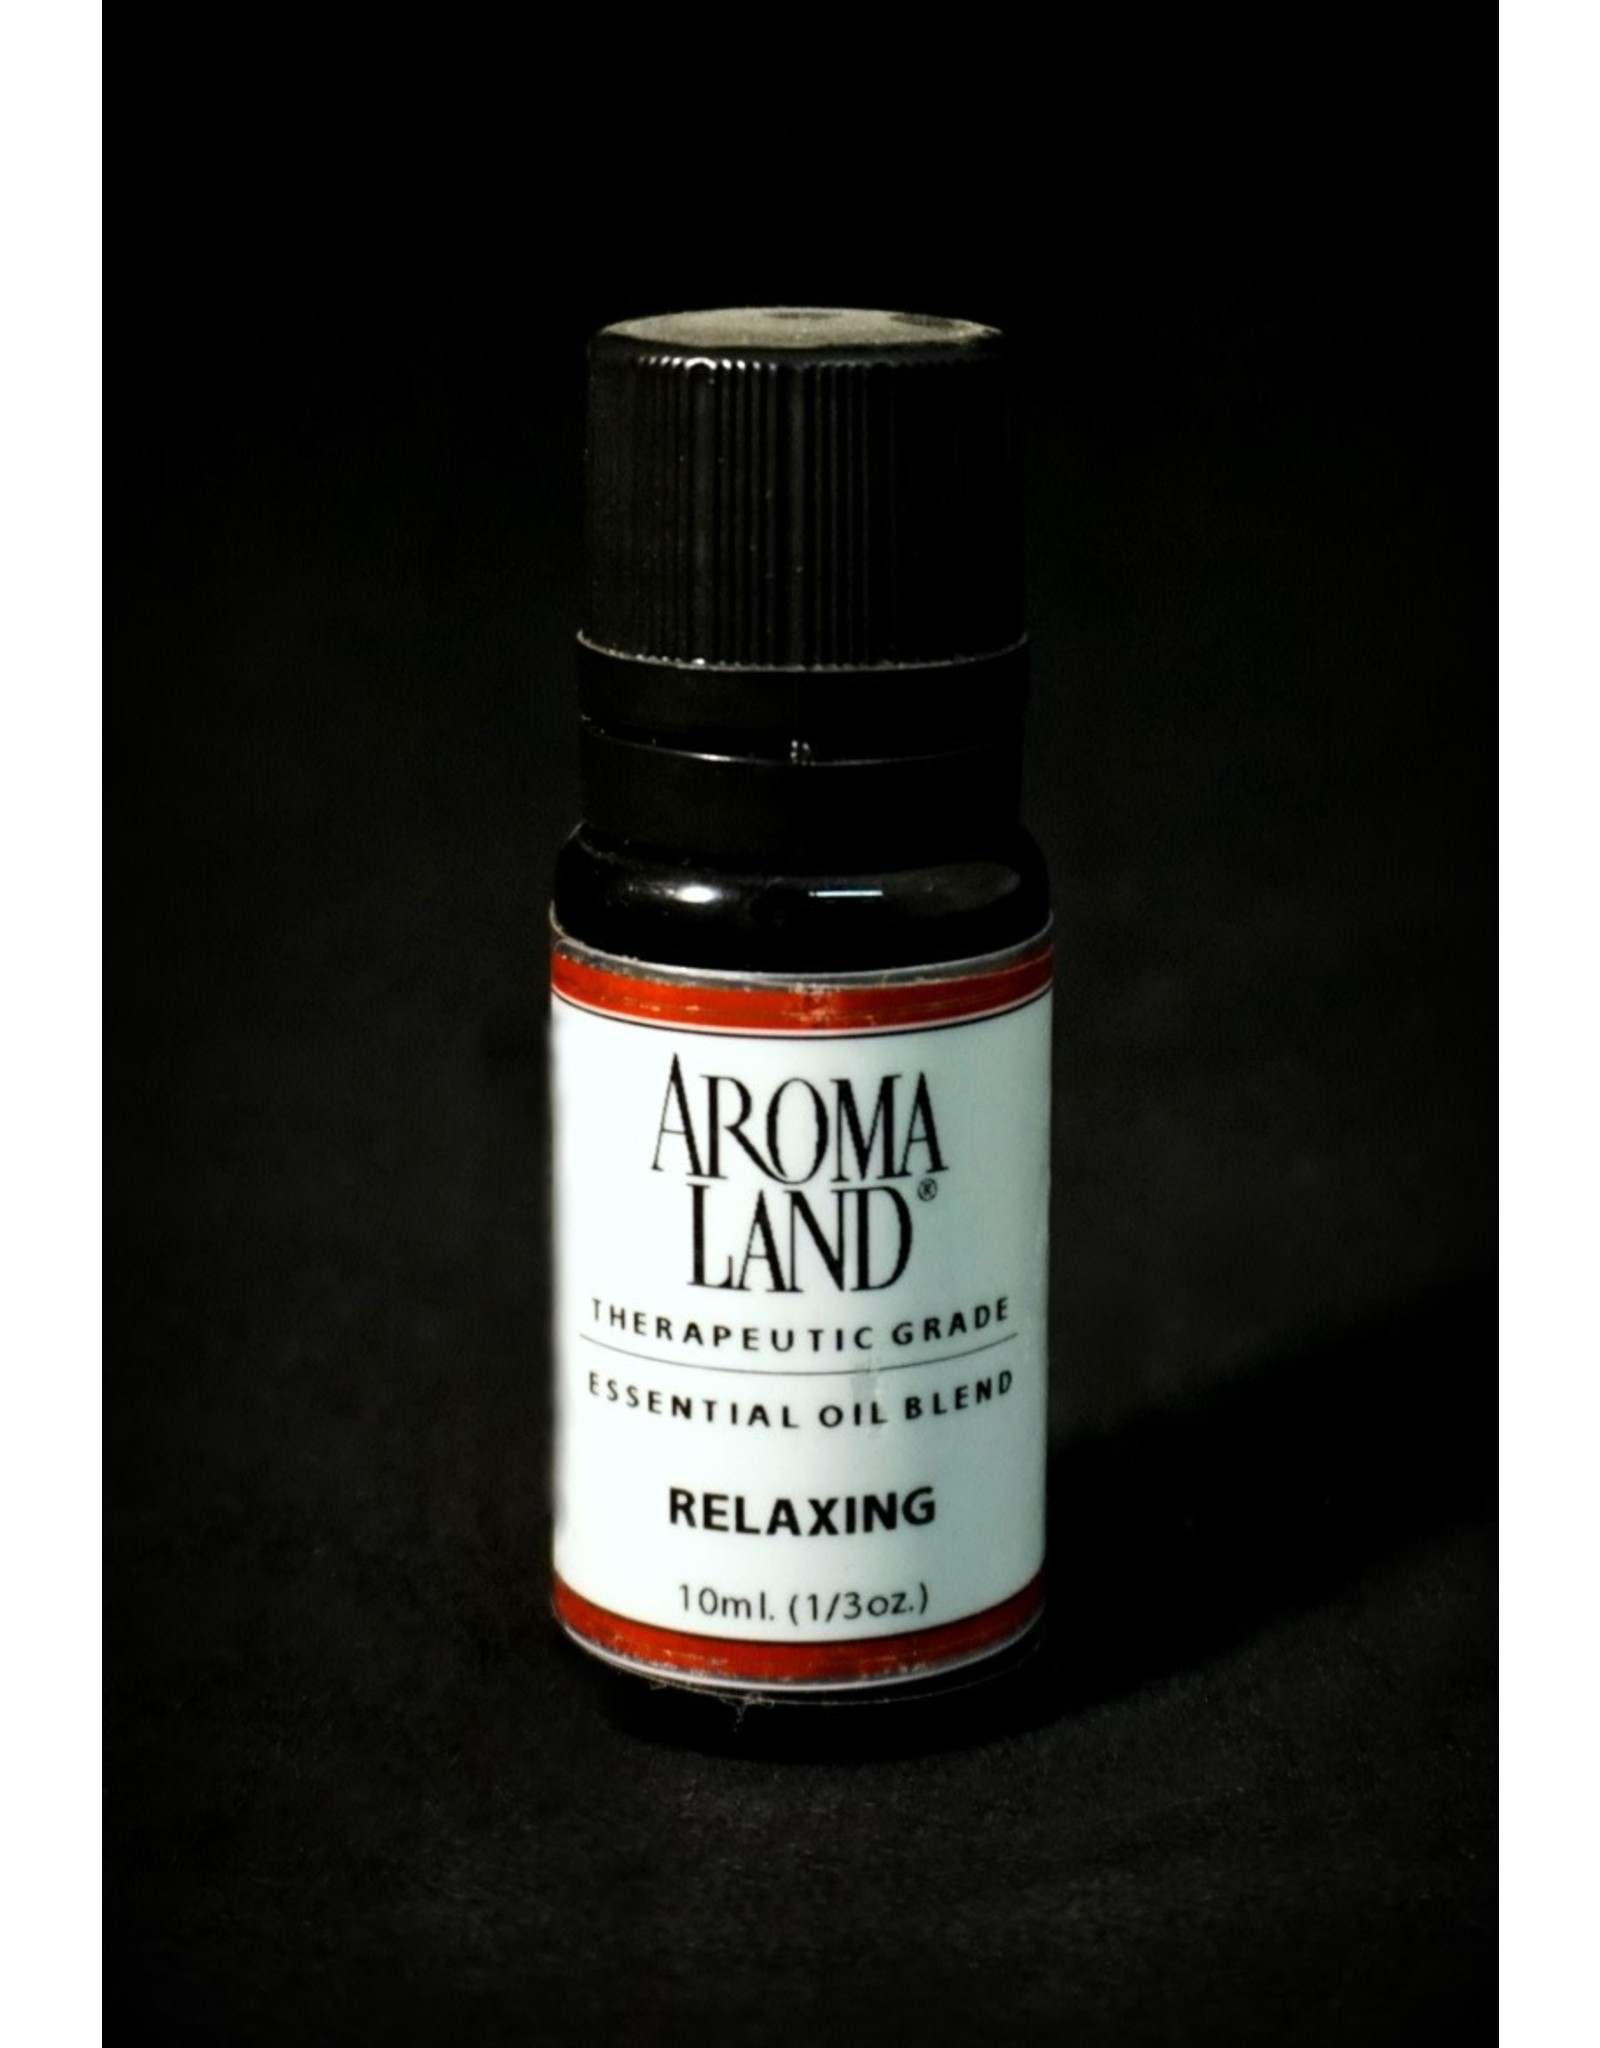 Aromaland Essential Oil Blend - Relaxing